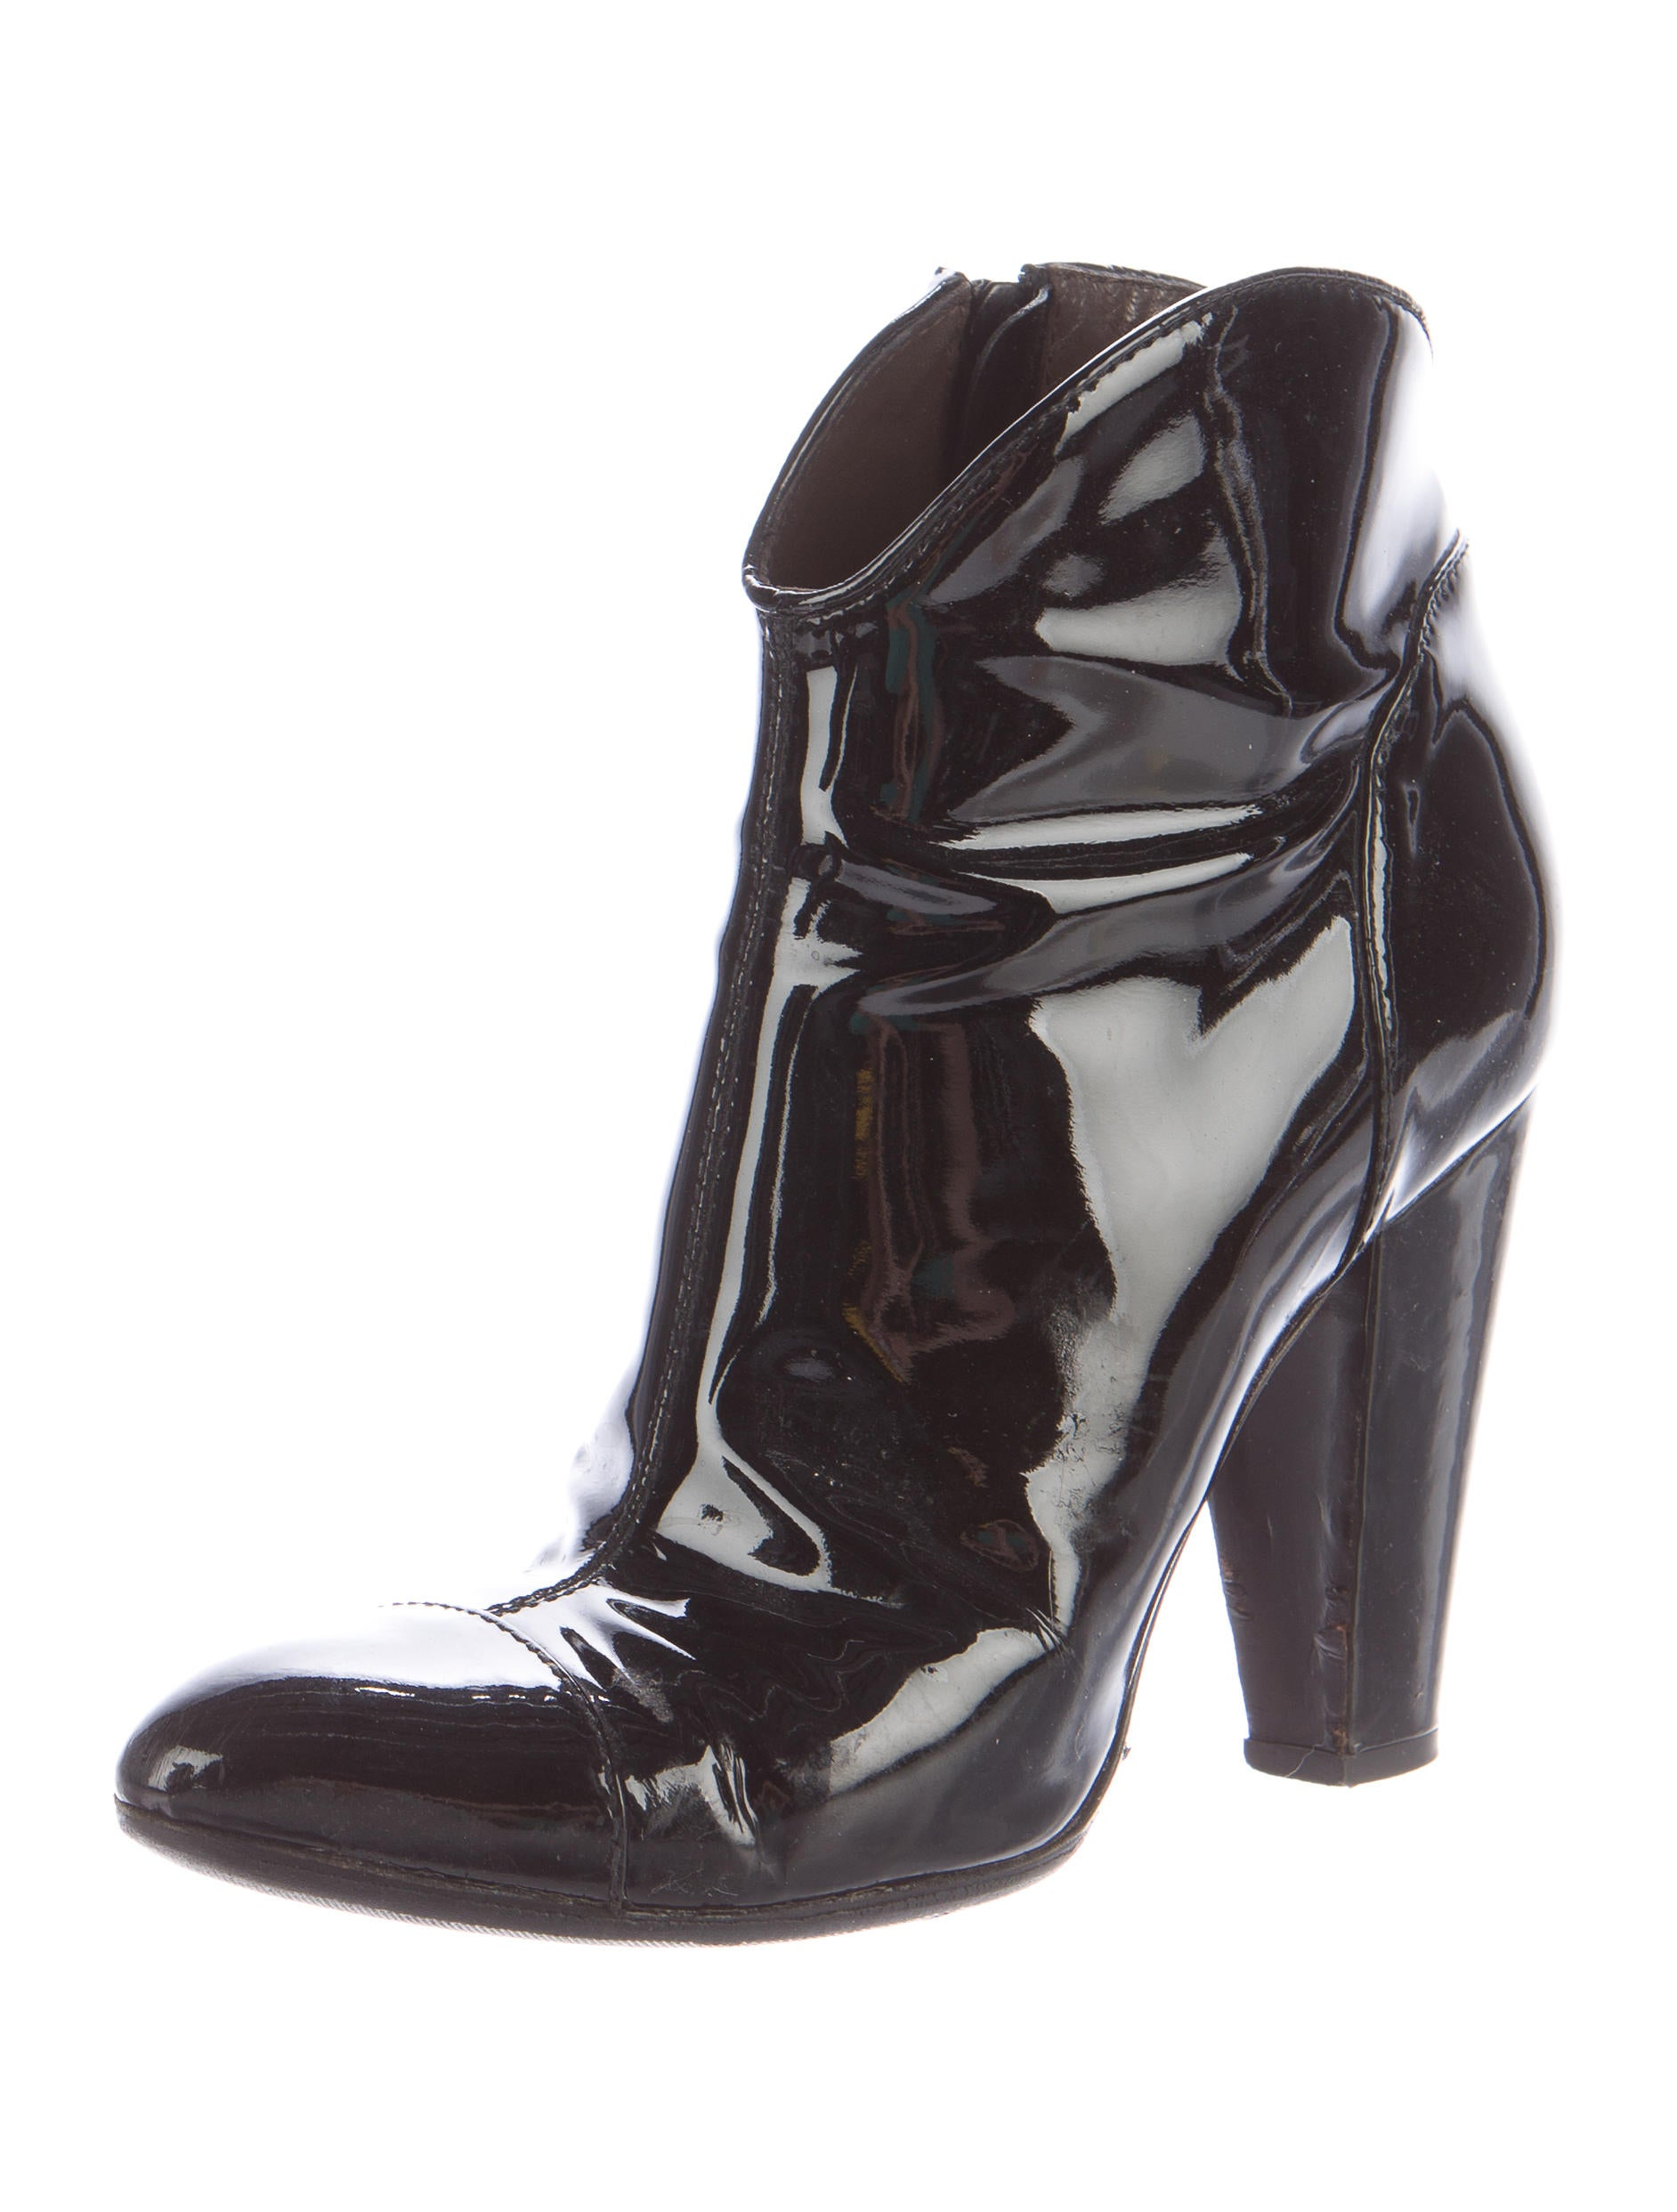 burberry patent leather cap toe ankle boots shoes